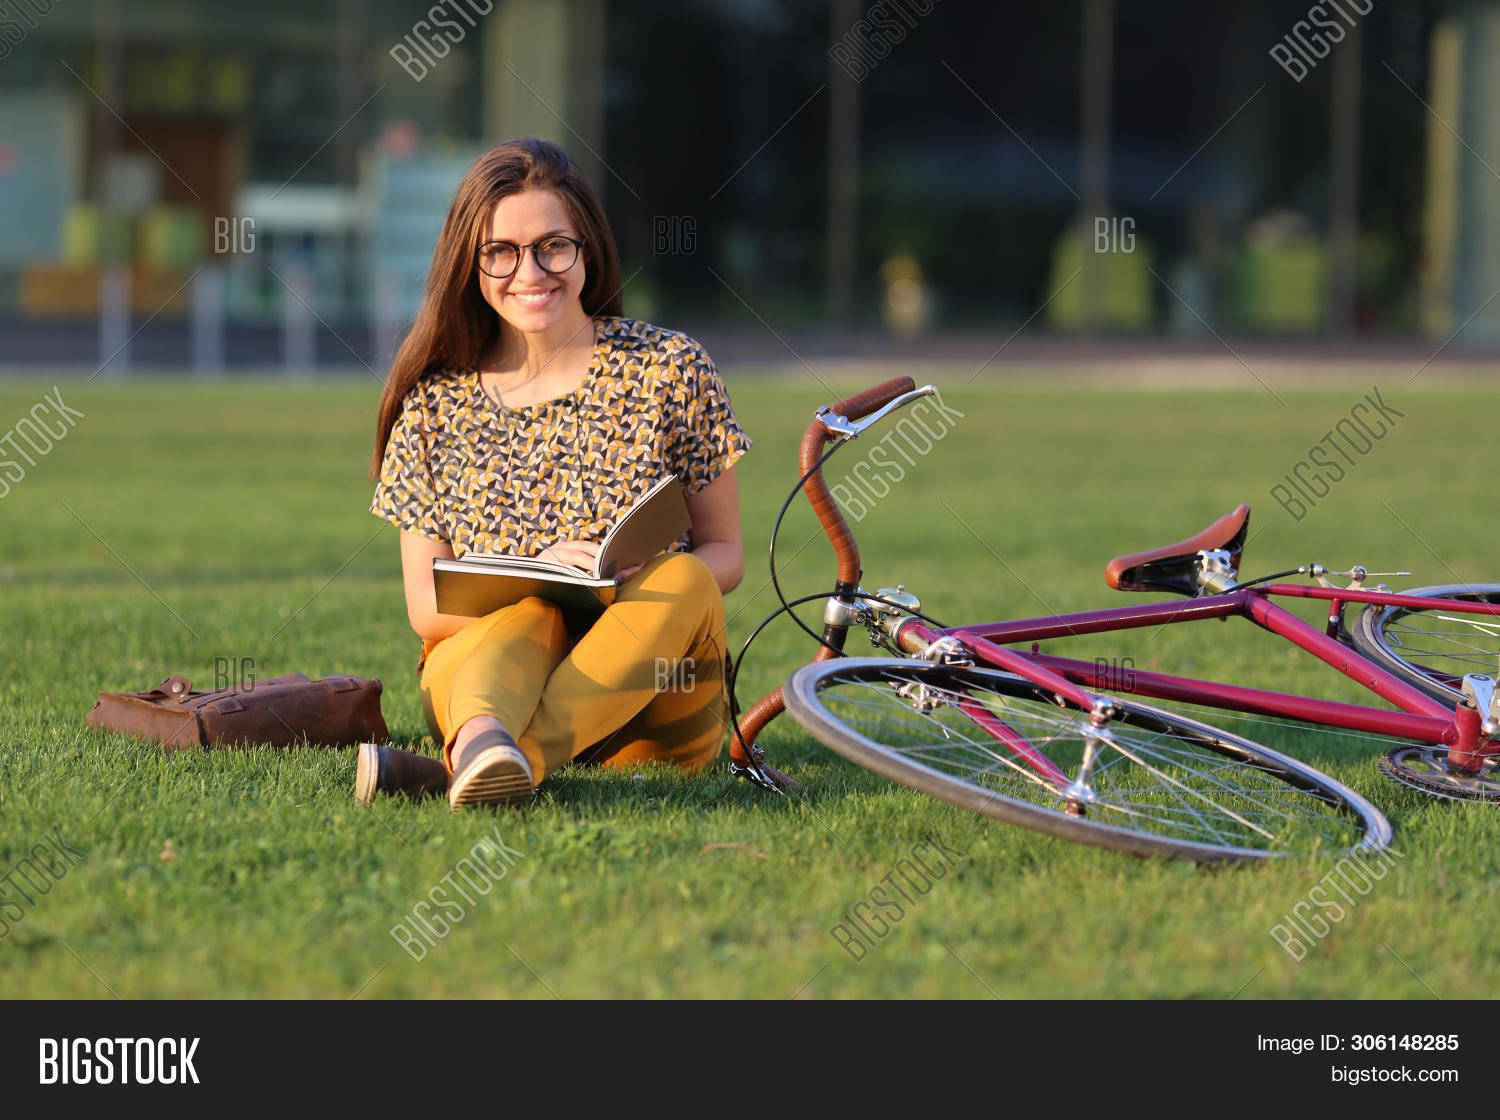 adult,background,backpack,beautiful,beauty,bicycle,casual,city,dress,female,girl,green,happiness,happy,healthy,lady,leather,life,lifestyle,looking,nature,outdoor,outside,park,people,person,playful,portrait,pretty,retro,school,single,smiling,street,student,summer,teenager,urban,woman,yellow,young